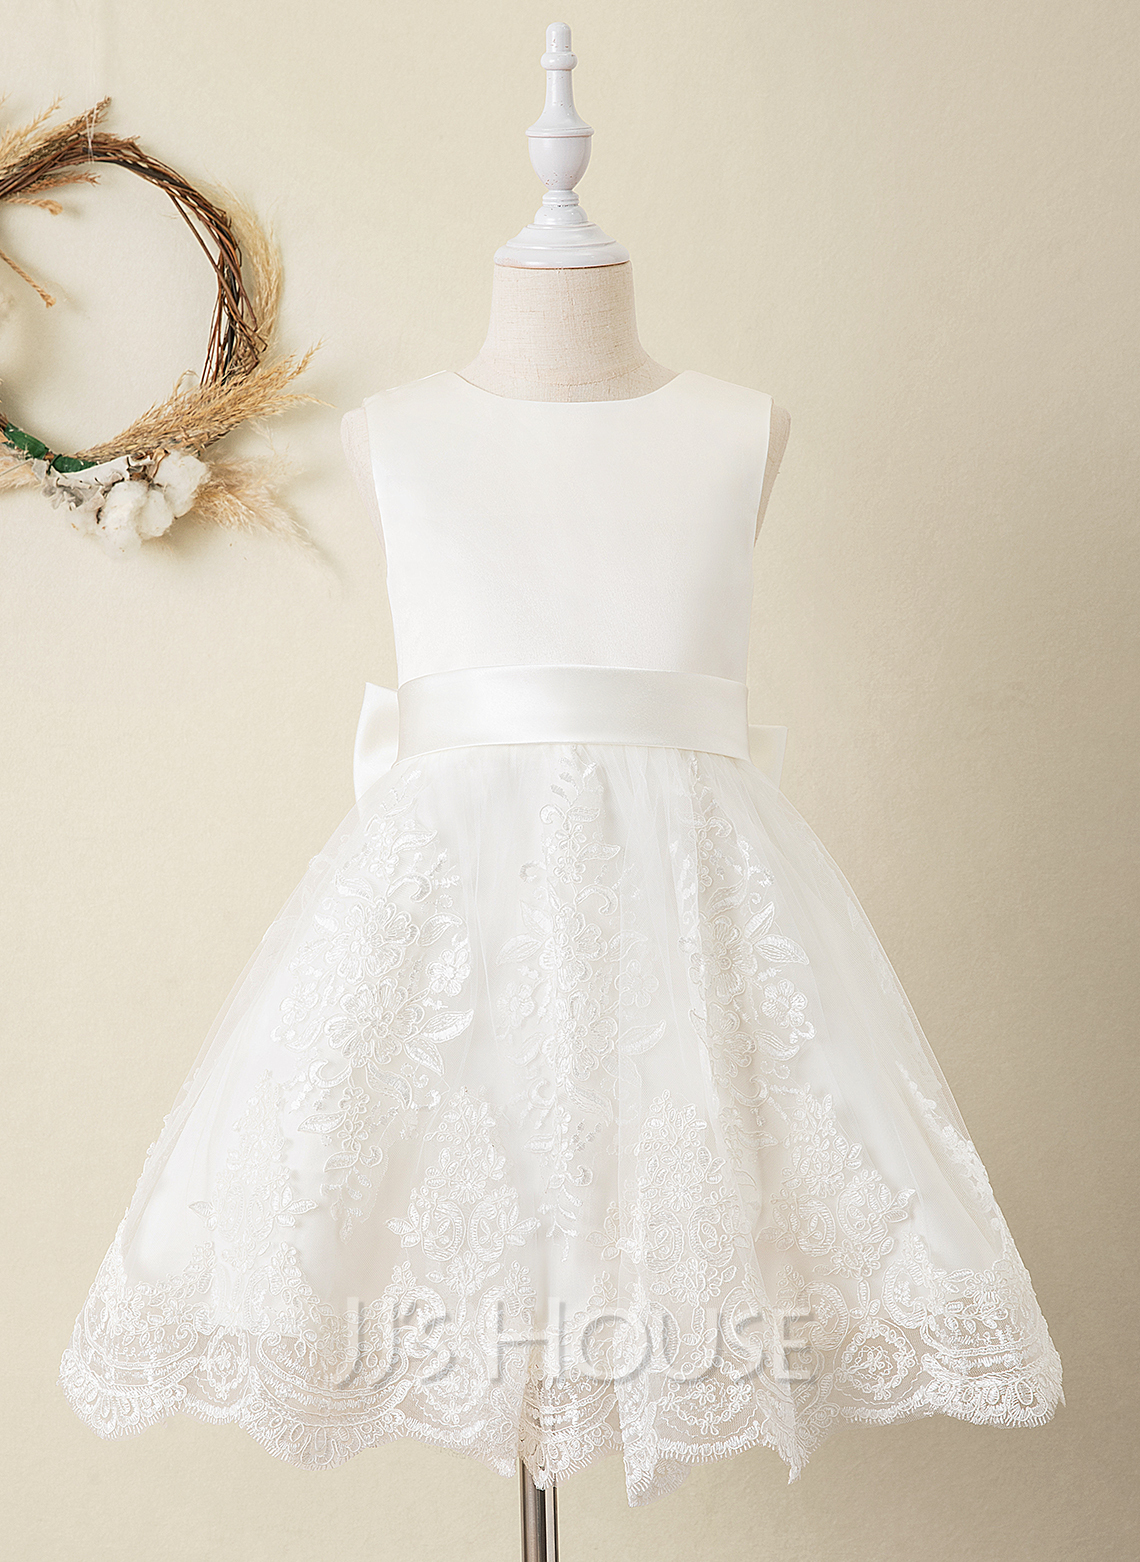 Ball-Gown/Princess Knee-length Flower Girl Dress - Satin/Lace Sleeveless Scoop Neck With Bow(s) (Undetachable sash)